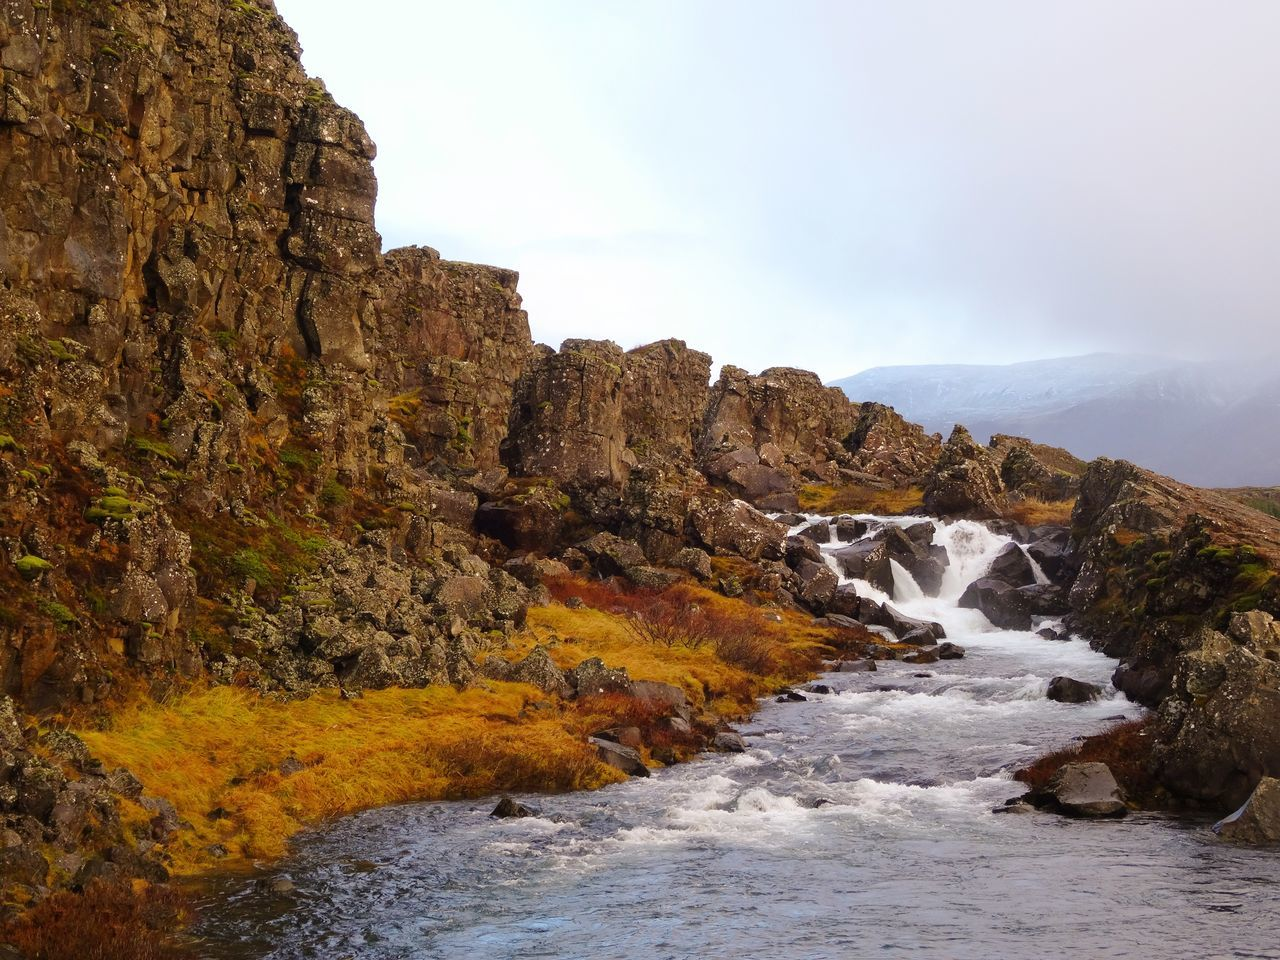 Nature Beauty In Nature Rock Formation Rock - Object Outdoors Landscape Sky Travel Destinations No People Tranquility Scenics Day Rock Rocks Waterfall Flowing Water Thingvellir National Park Thingvellir Iceland